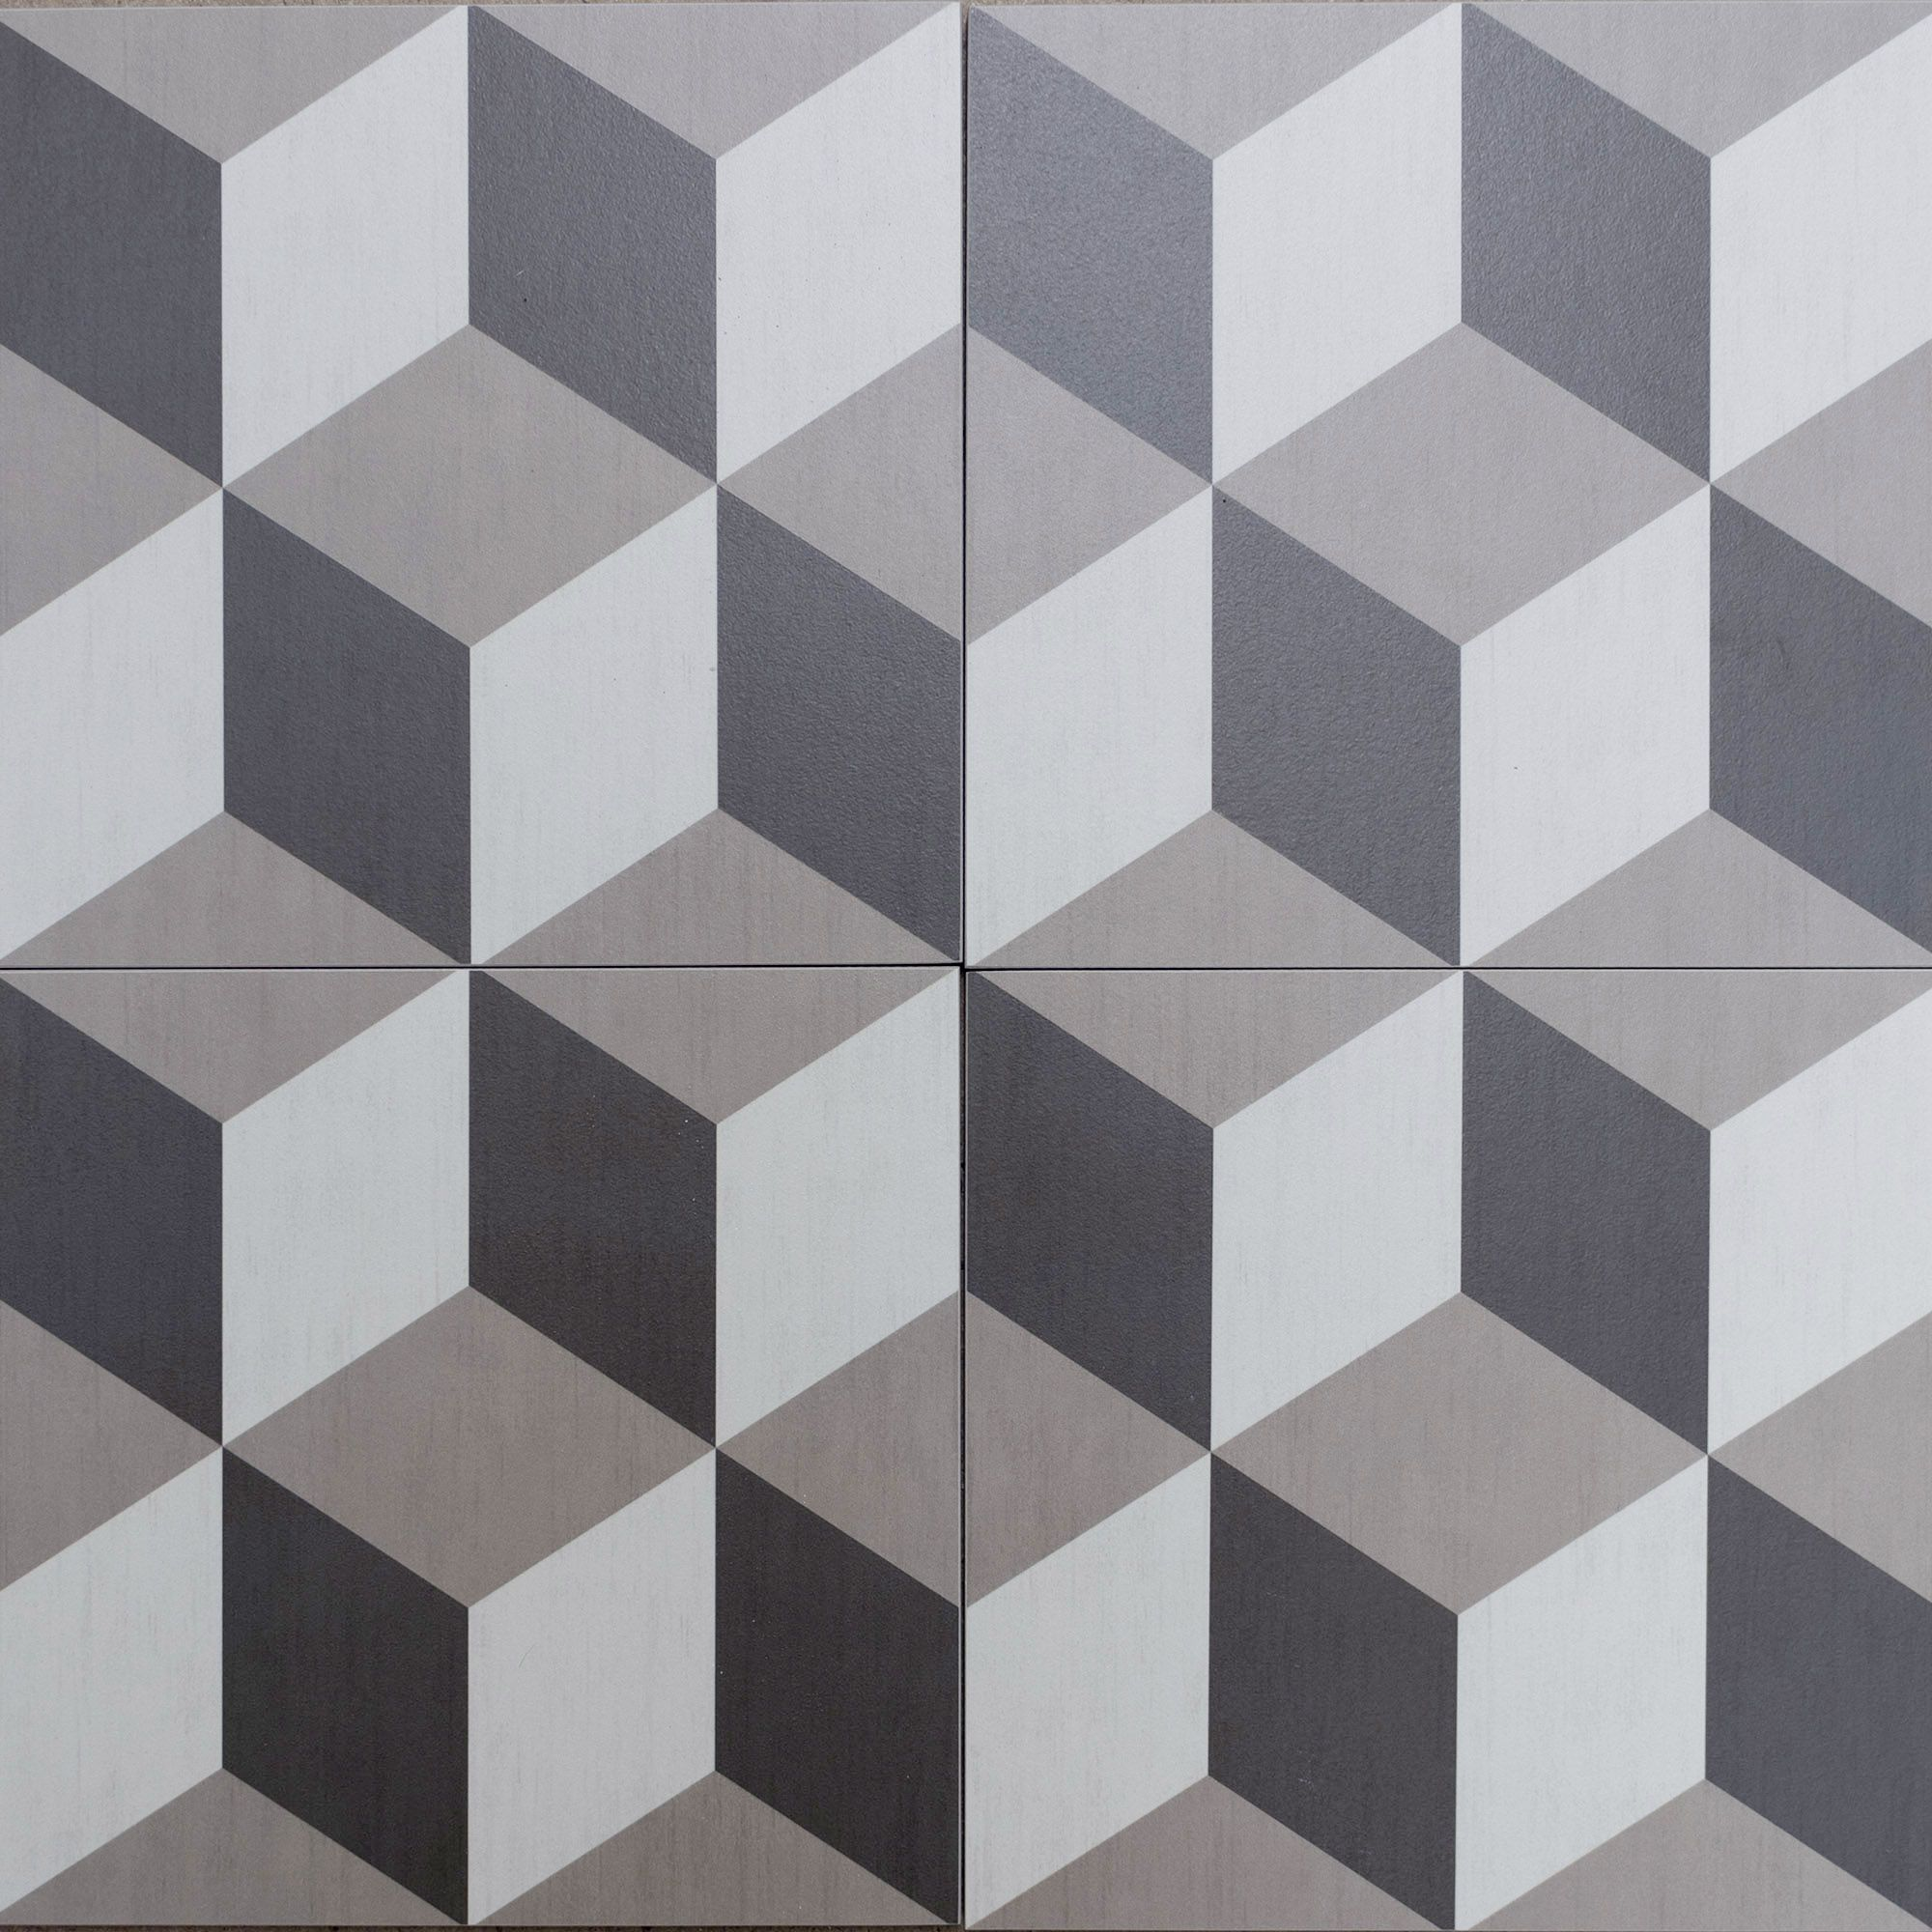 Cubic Geometric Style Floor Tiles Encaustic Look Porcelain Tiles Grey Shades With Funky Retro Pattern Tile Patterns Tiles Tile Floor